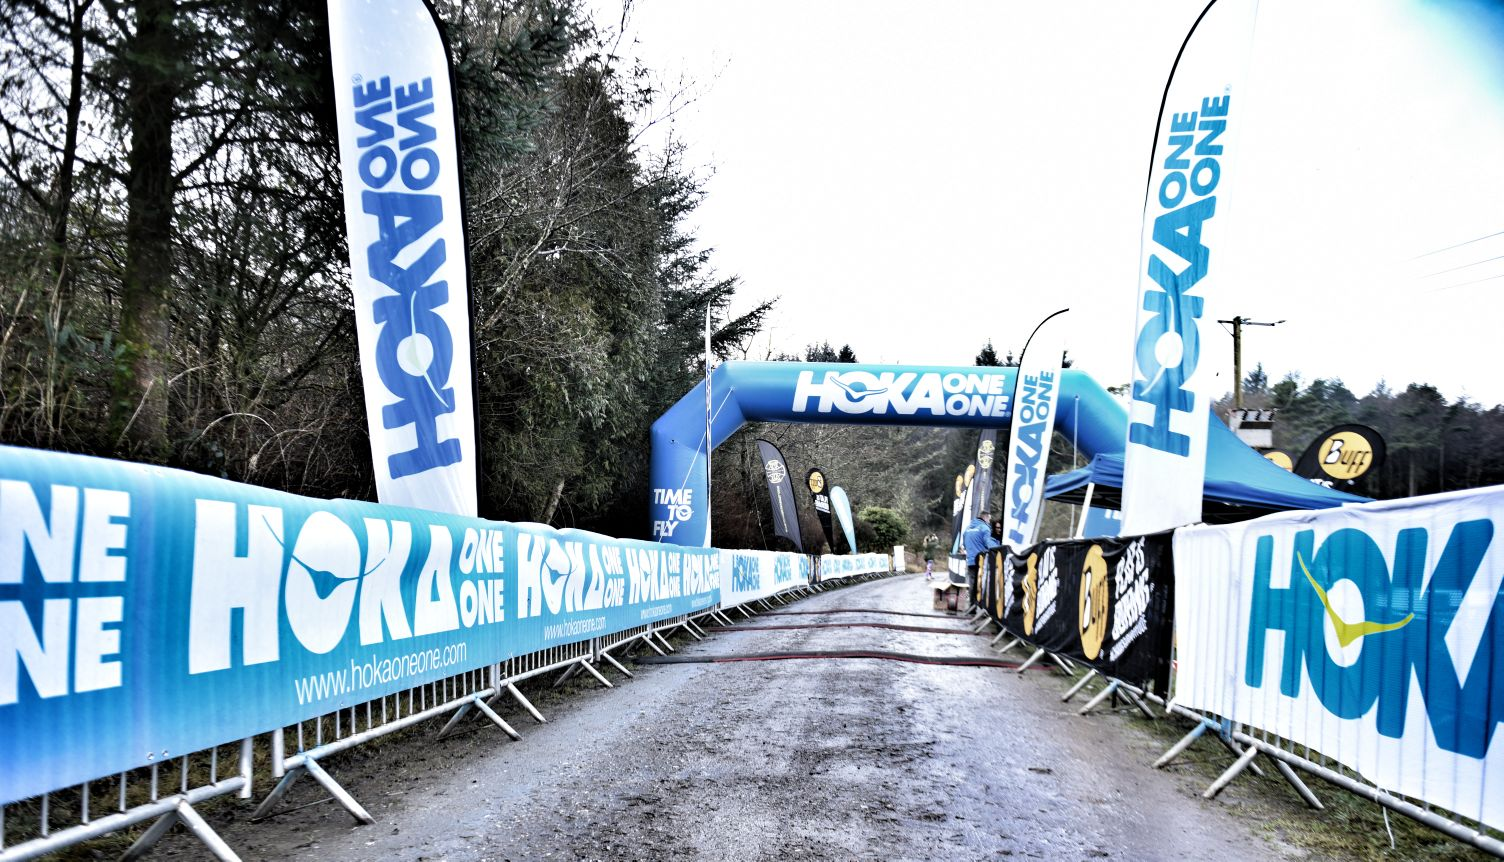 This is the image of the starting setup of the Hoka one one Half Marathon